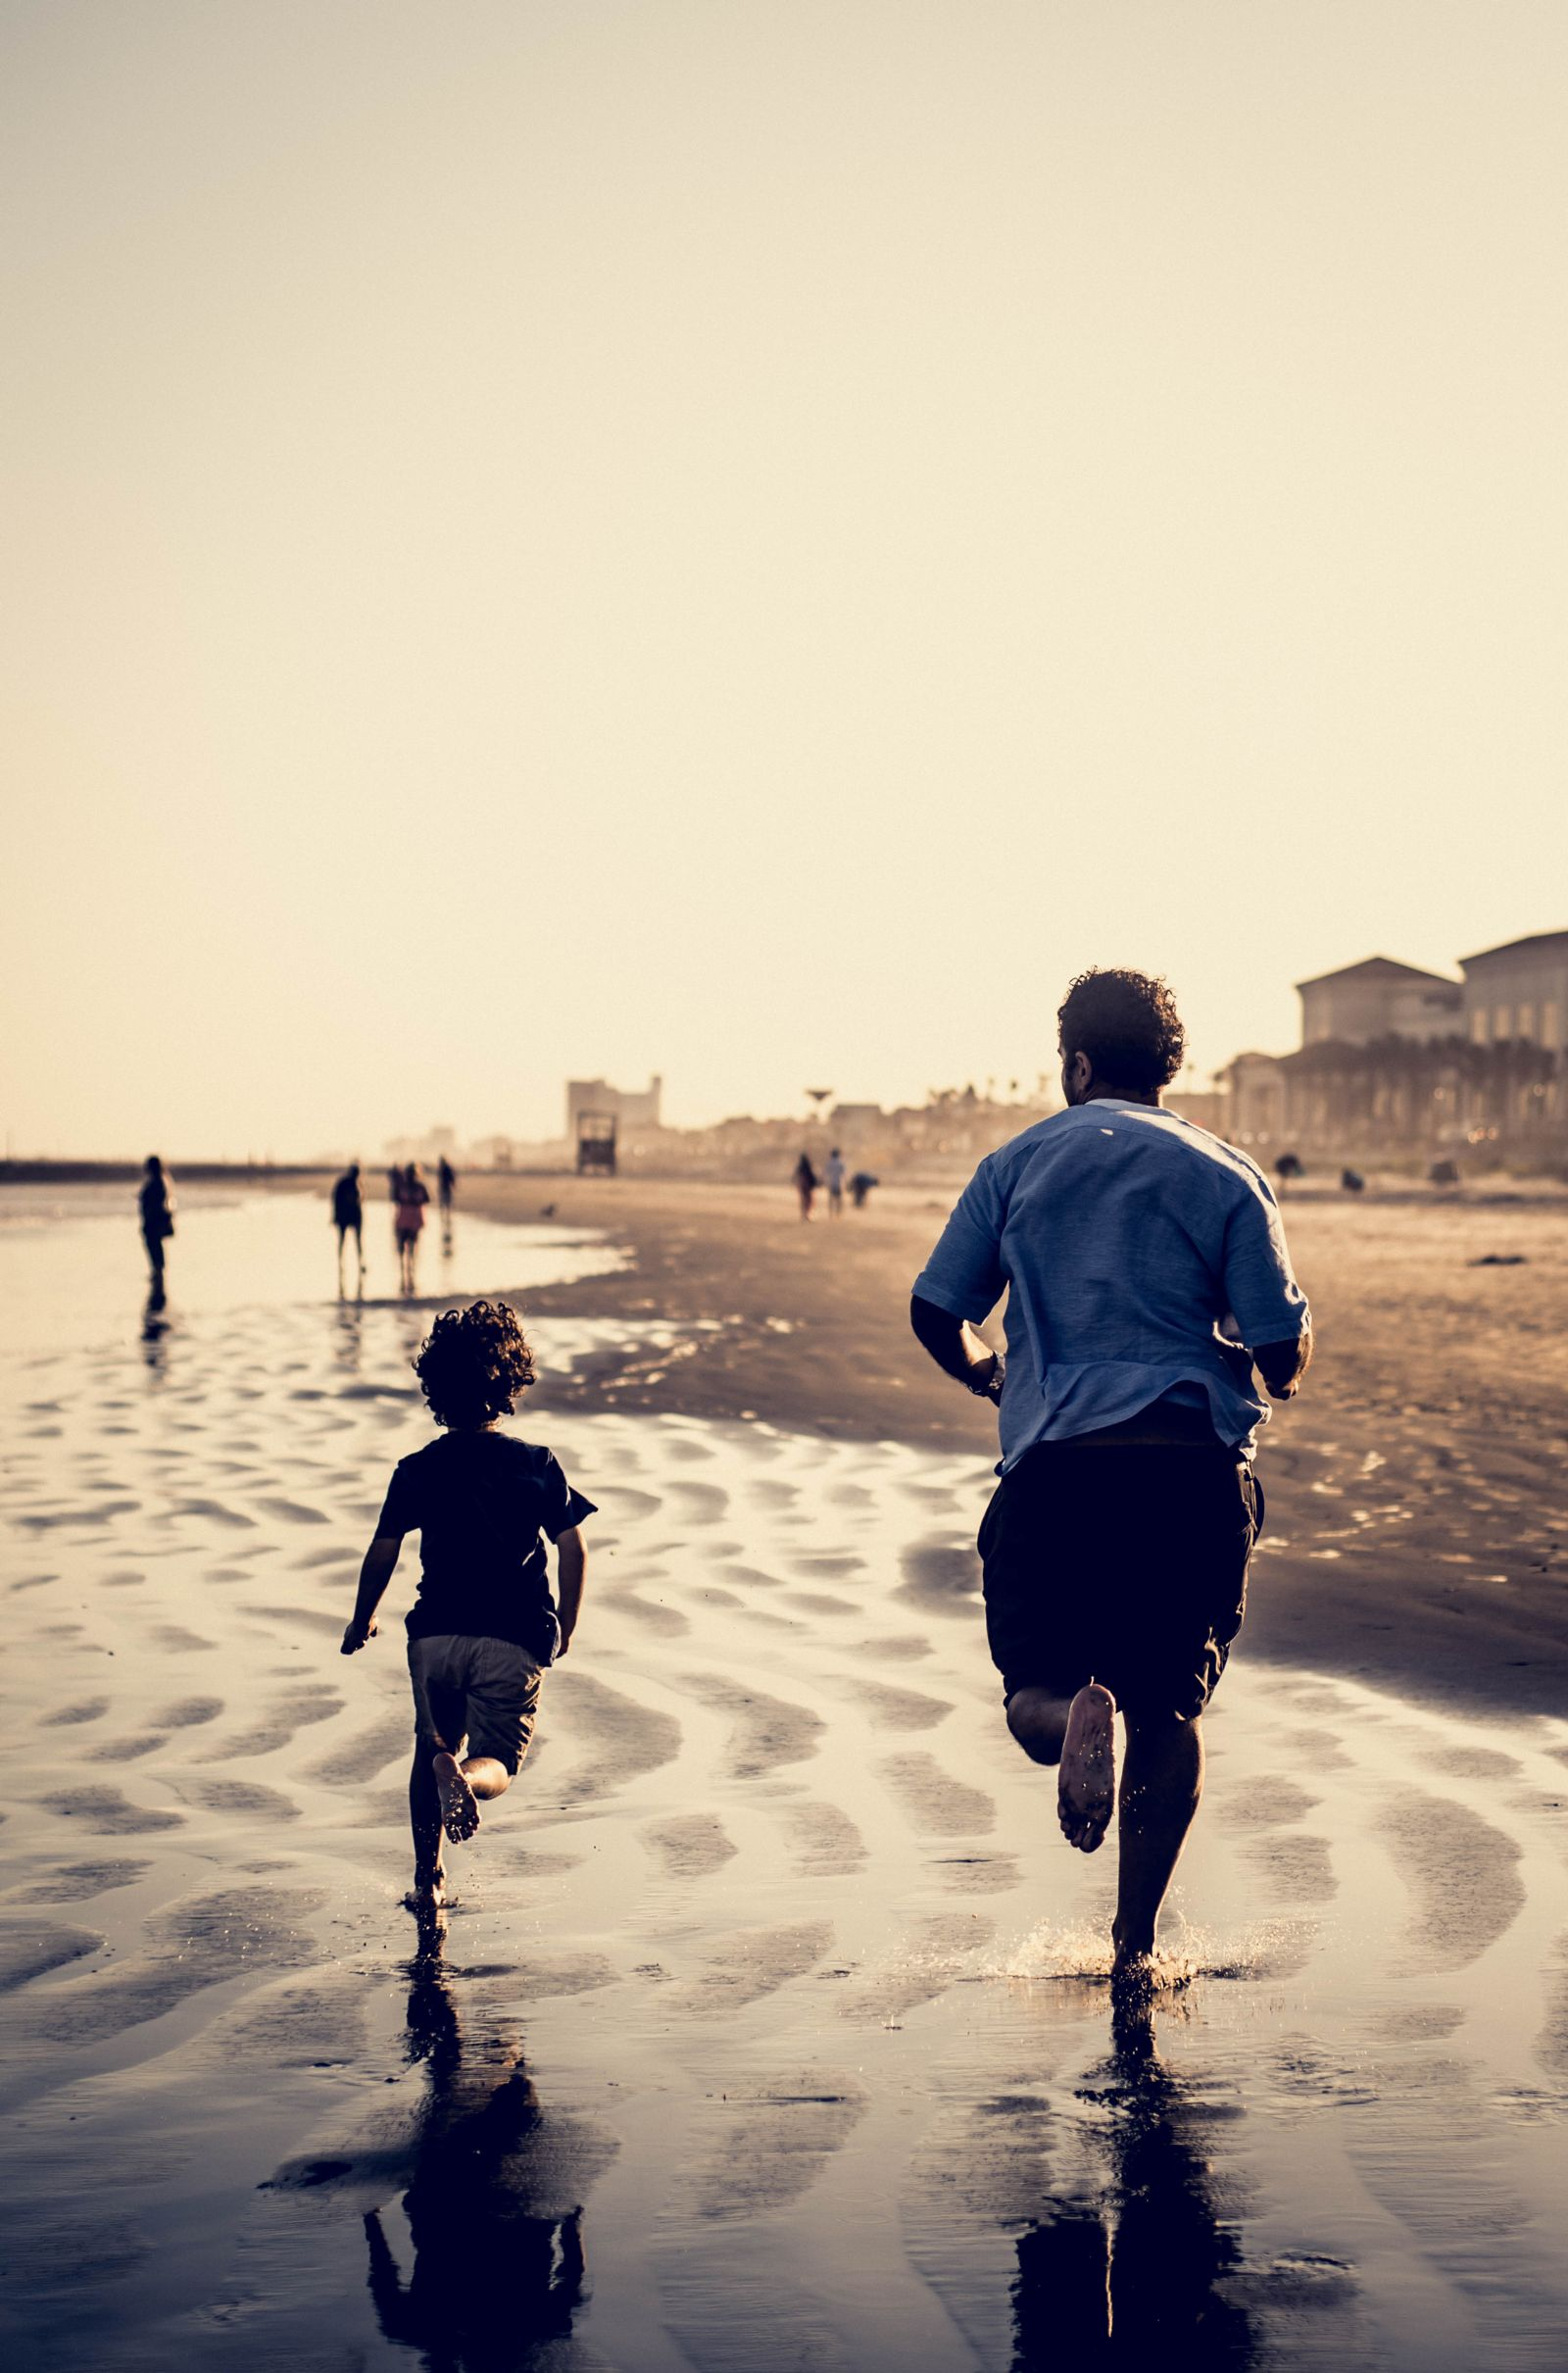 Instead of hitting the treadmill, consider taking your runs outdoors with your family!